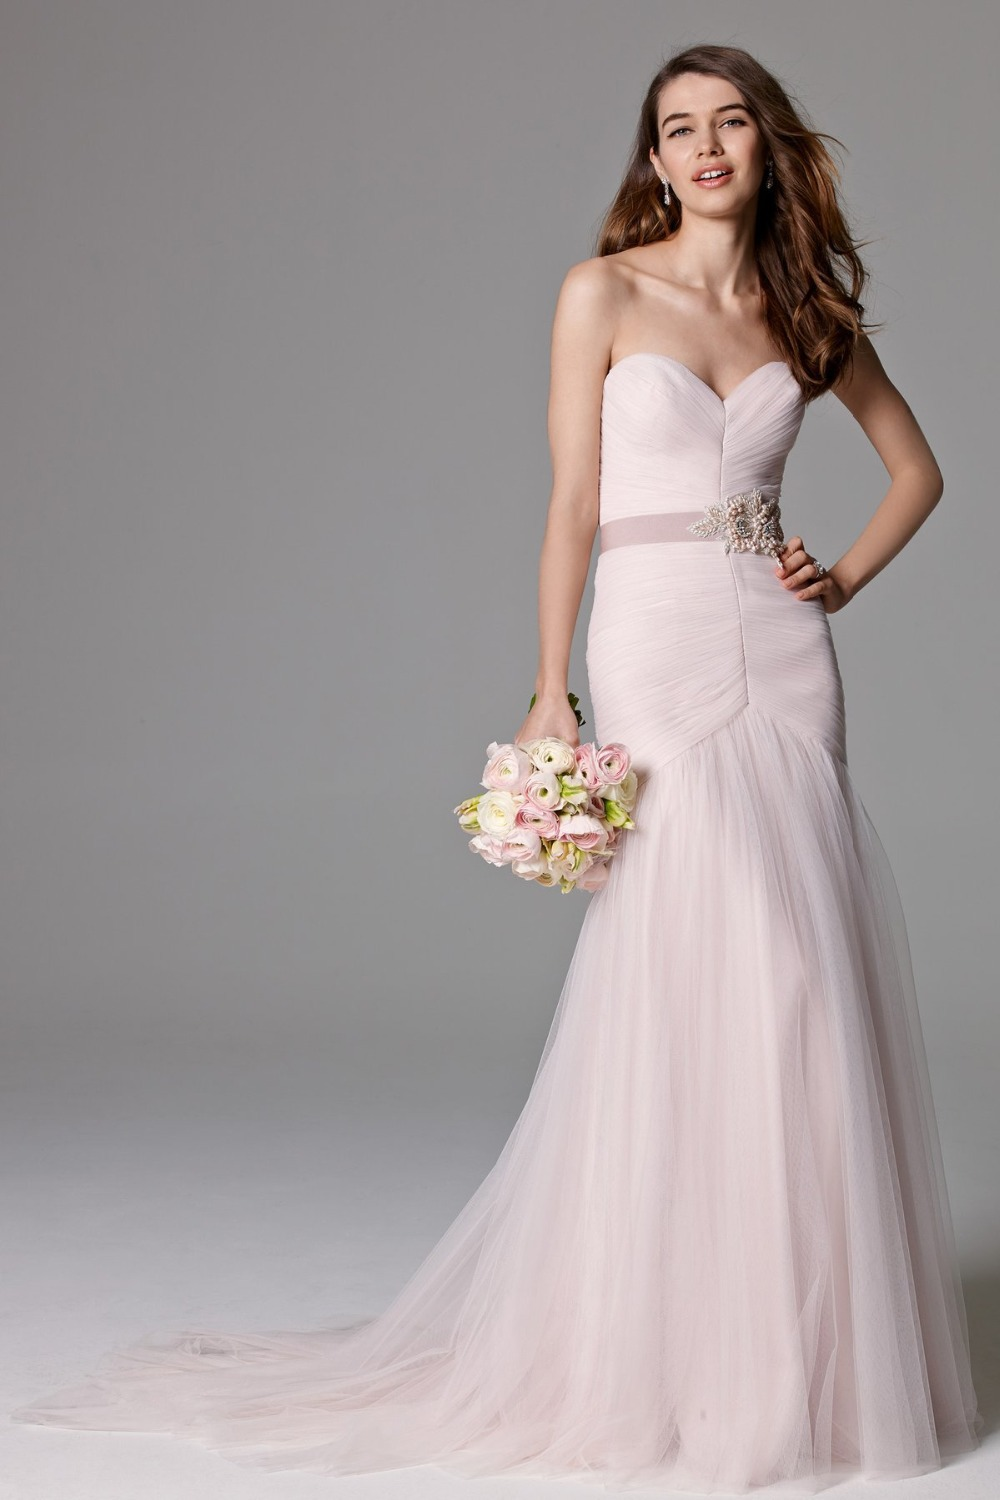 Pale pink wedding dresseswedding dressesdressesss pale pink wedding dresses junglespirit Images